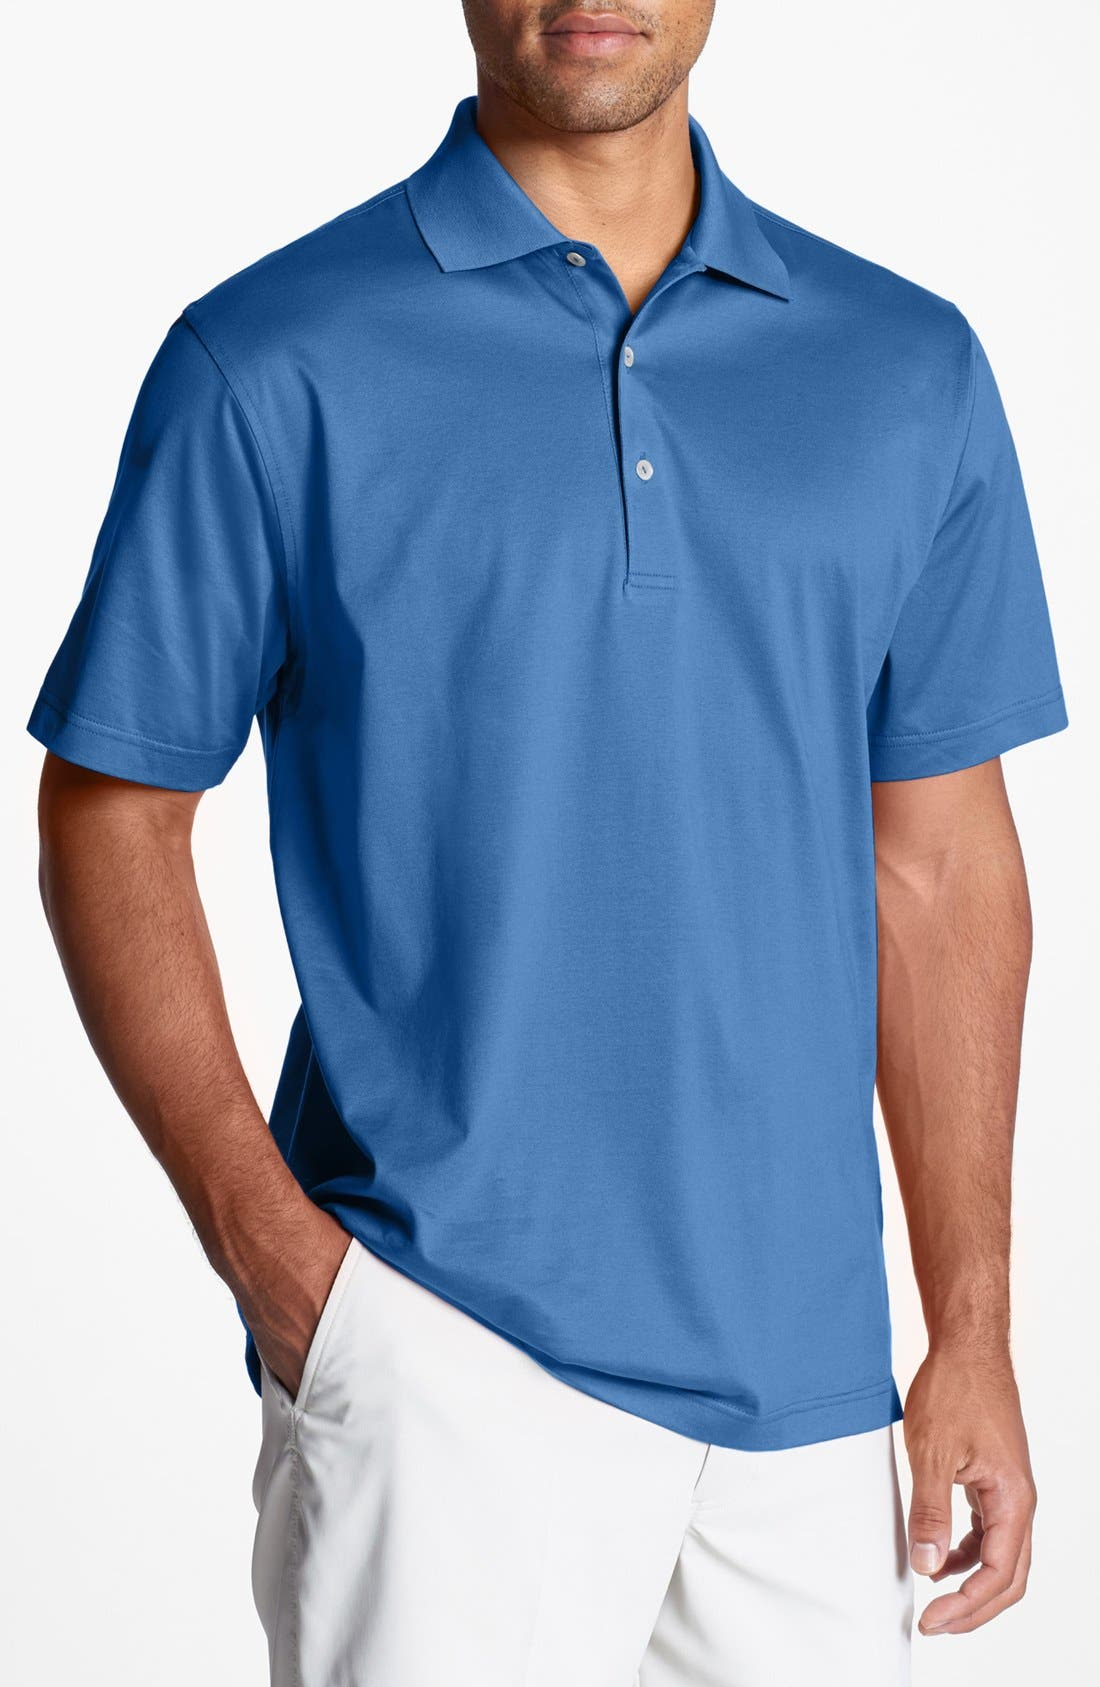 Alternate Image 1 Selected - Peter Millar Solid Knit Polo